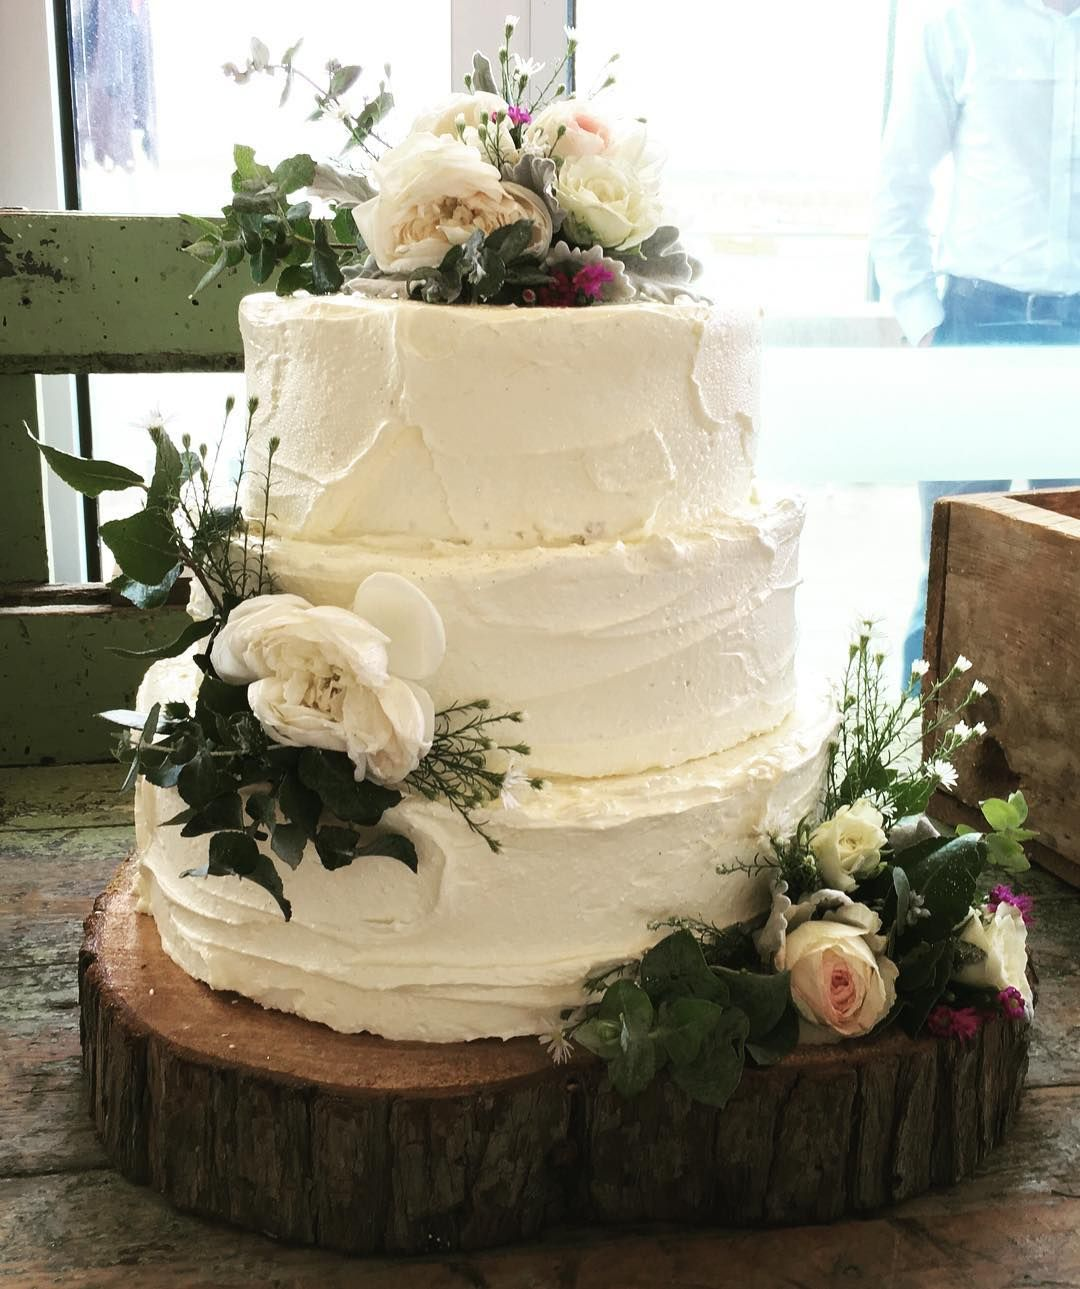 When you see amazing wedding cakes and wonder just how tasty they are. I could never be responsible for dropping one of these bad boys off and not having a little taste test. @pavilioncafebar #warrnamboolwedding #weddingcake #delicious #weddinghire #eventhire #daylesford #ballarat #warrnambool #horsham #andanywhereinbetween #westerndistrictwedding by thelittleblacksheephireco